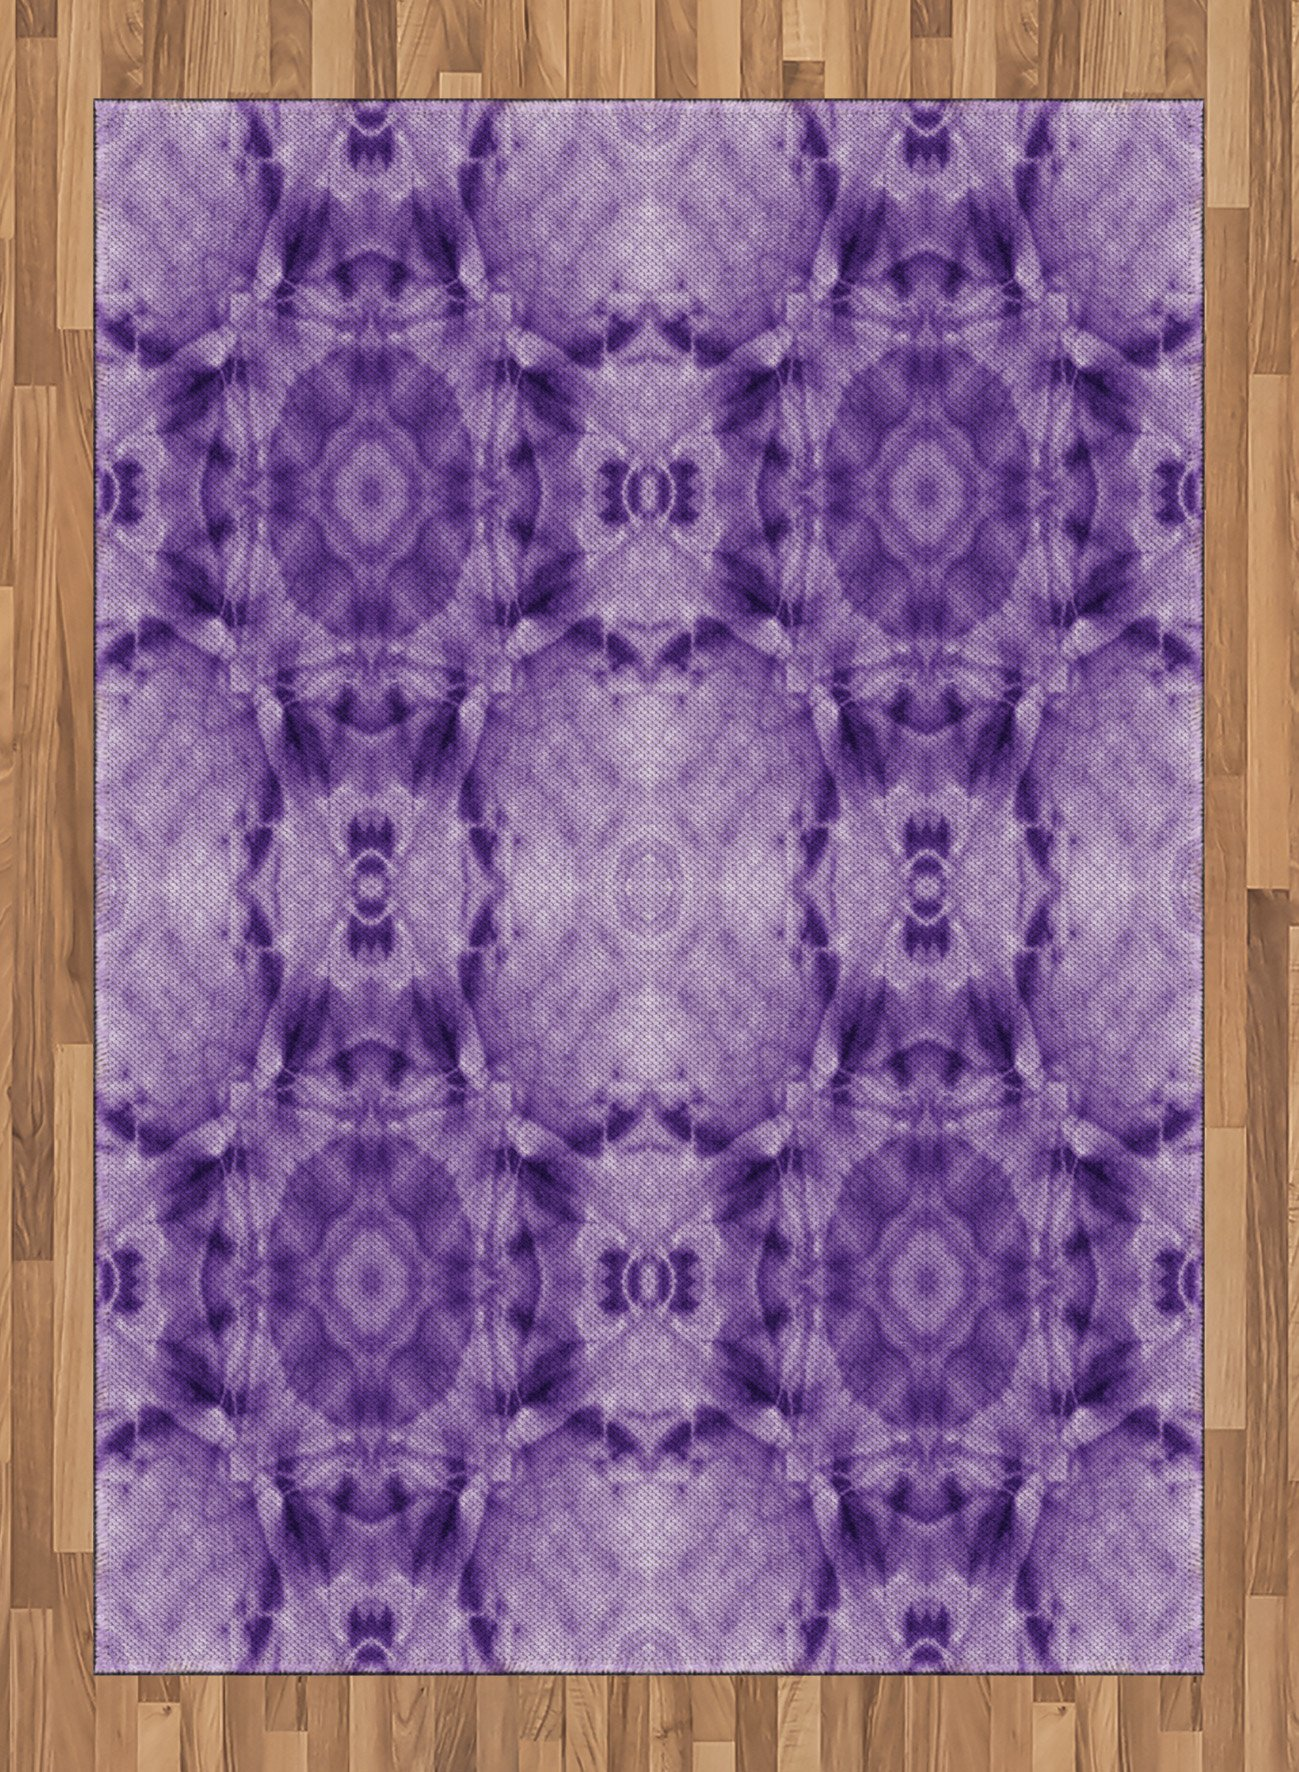 Tie Dye Decor Area Rug by Ambesonne, Thai Style Motif Generated with Square Shaped Kaleidoscope Murky Toned Forms, Flat Woven Accent Rug for Living Room Bedroom Dining Room, 5.2 x 7.5 FT, Purple by Ambesonne